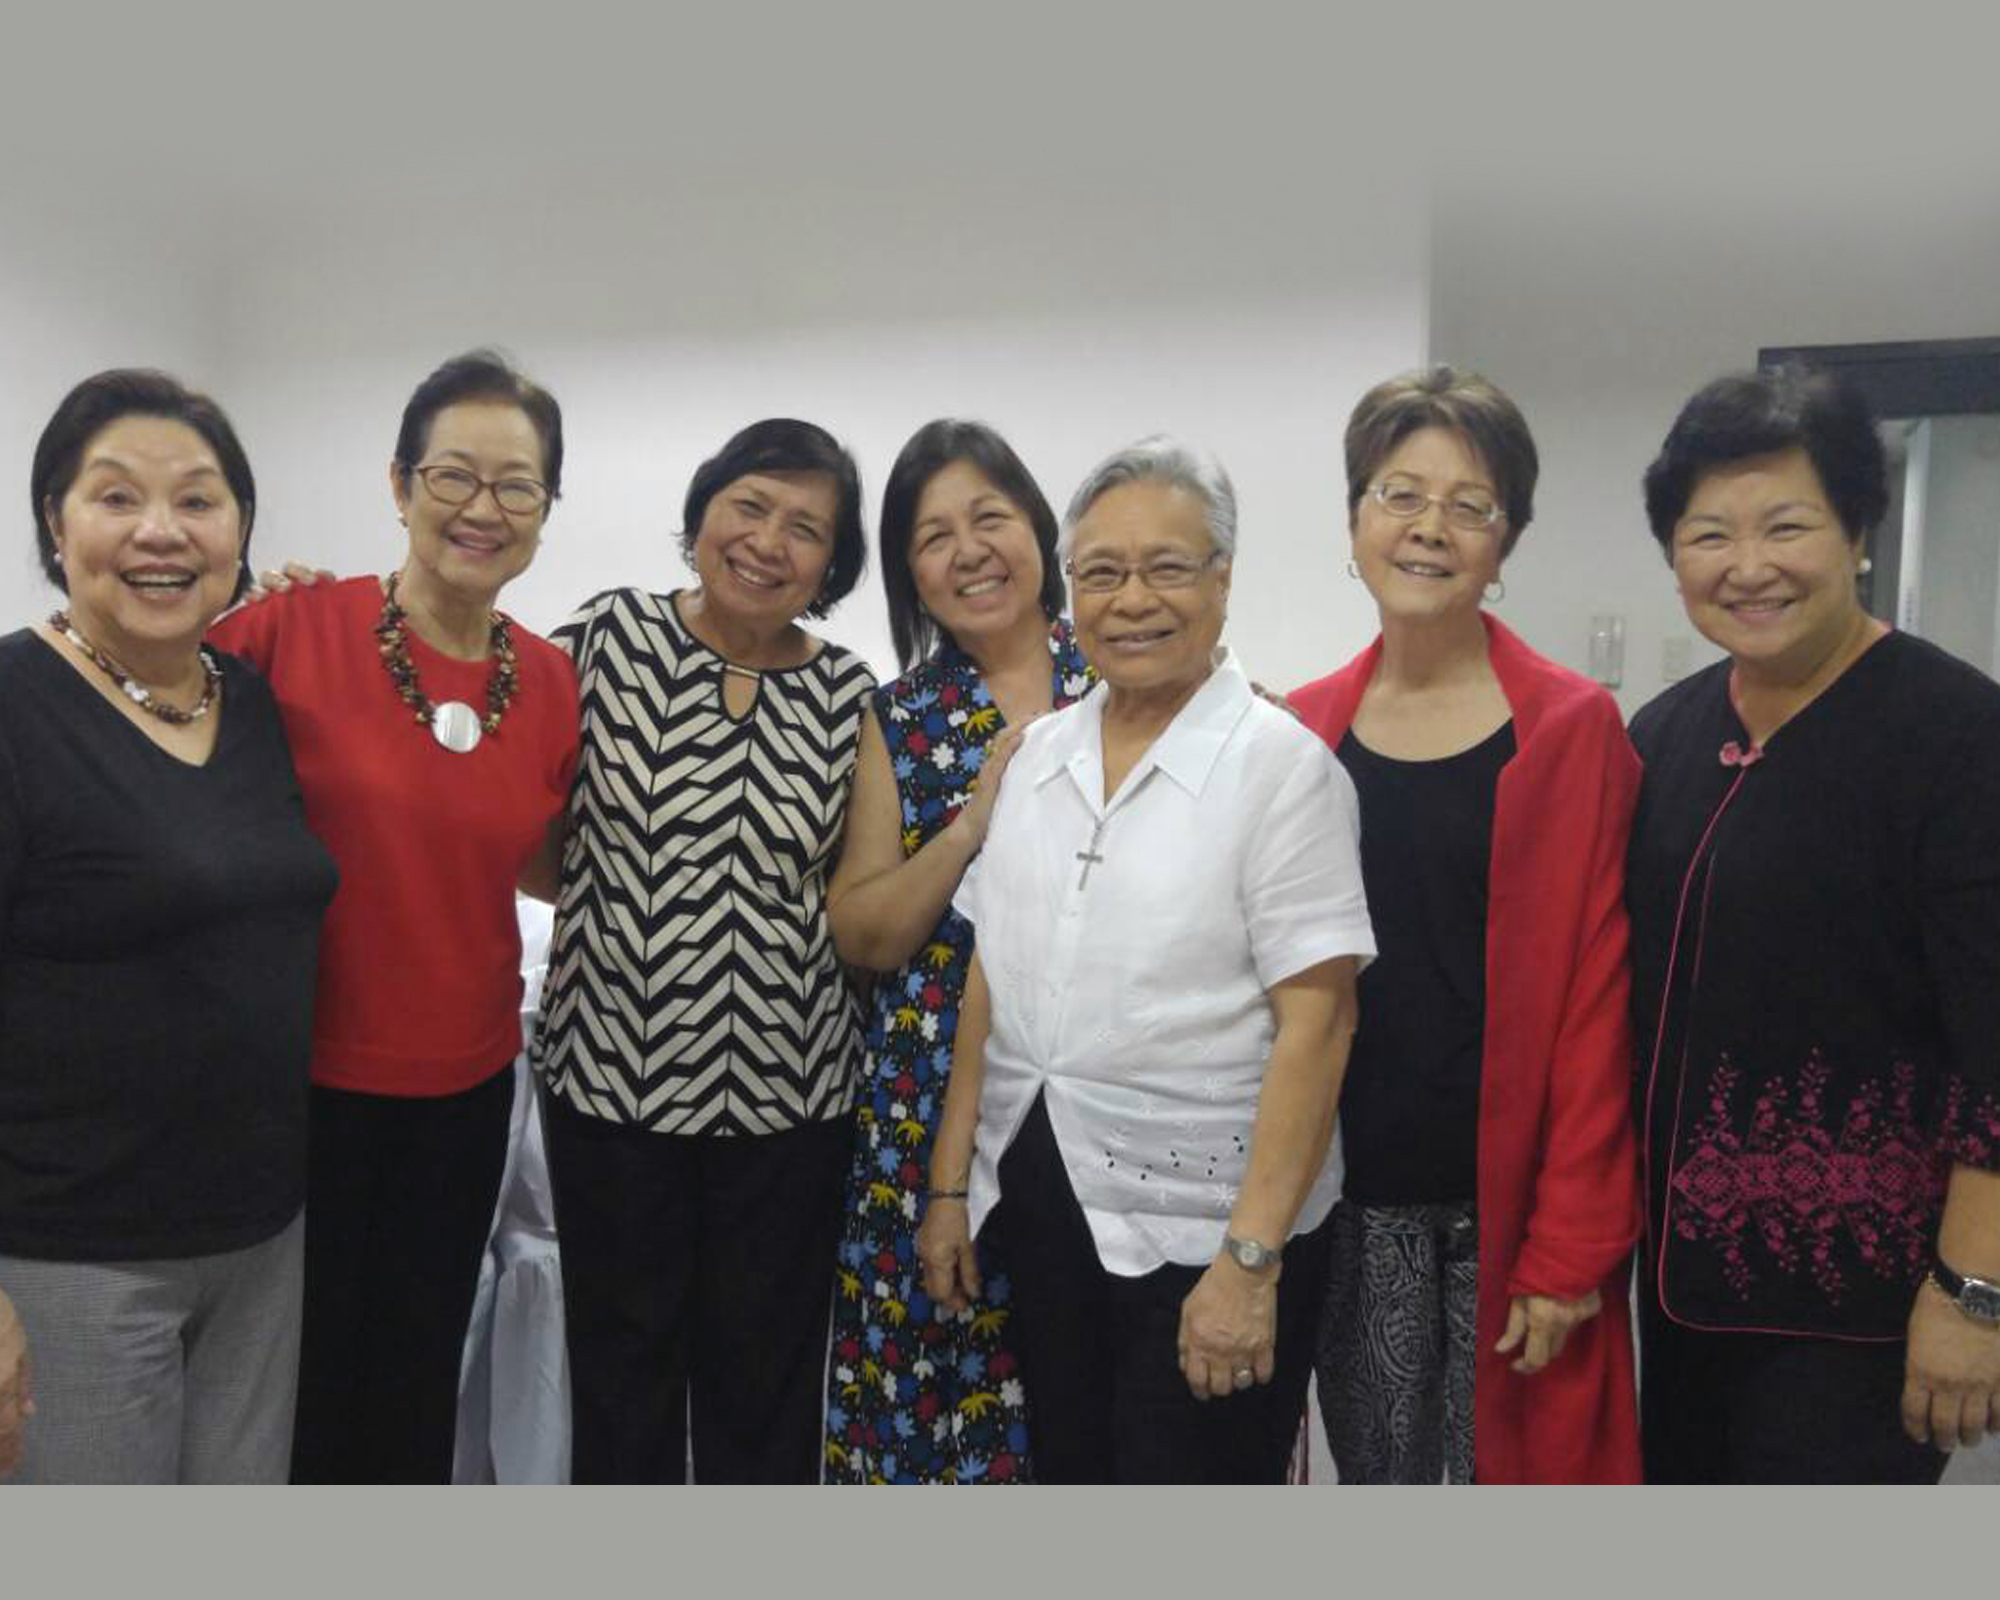 Sr. Teresita Perez, M.M. visits MC colleagues, MCN